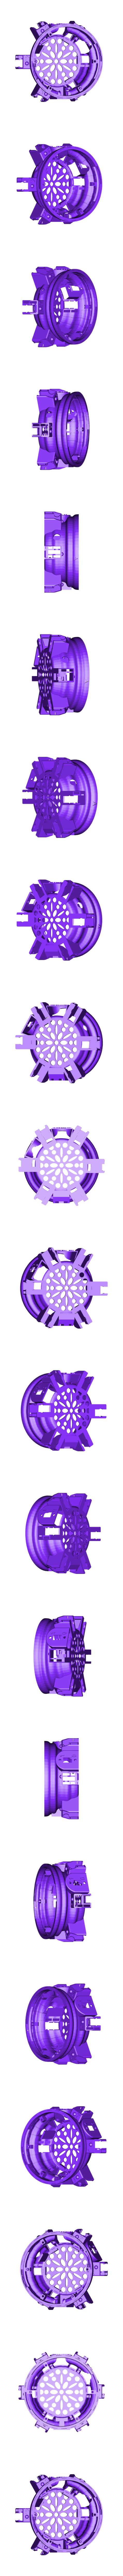 Hexapod_V1r8a_Base.stl Download free STL file Vorpal Combat Hexapod Robot • 3D printable template, pend